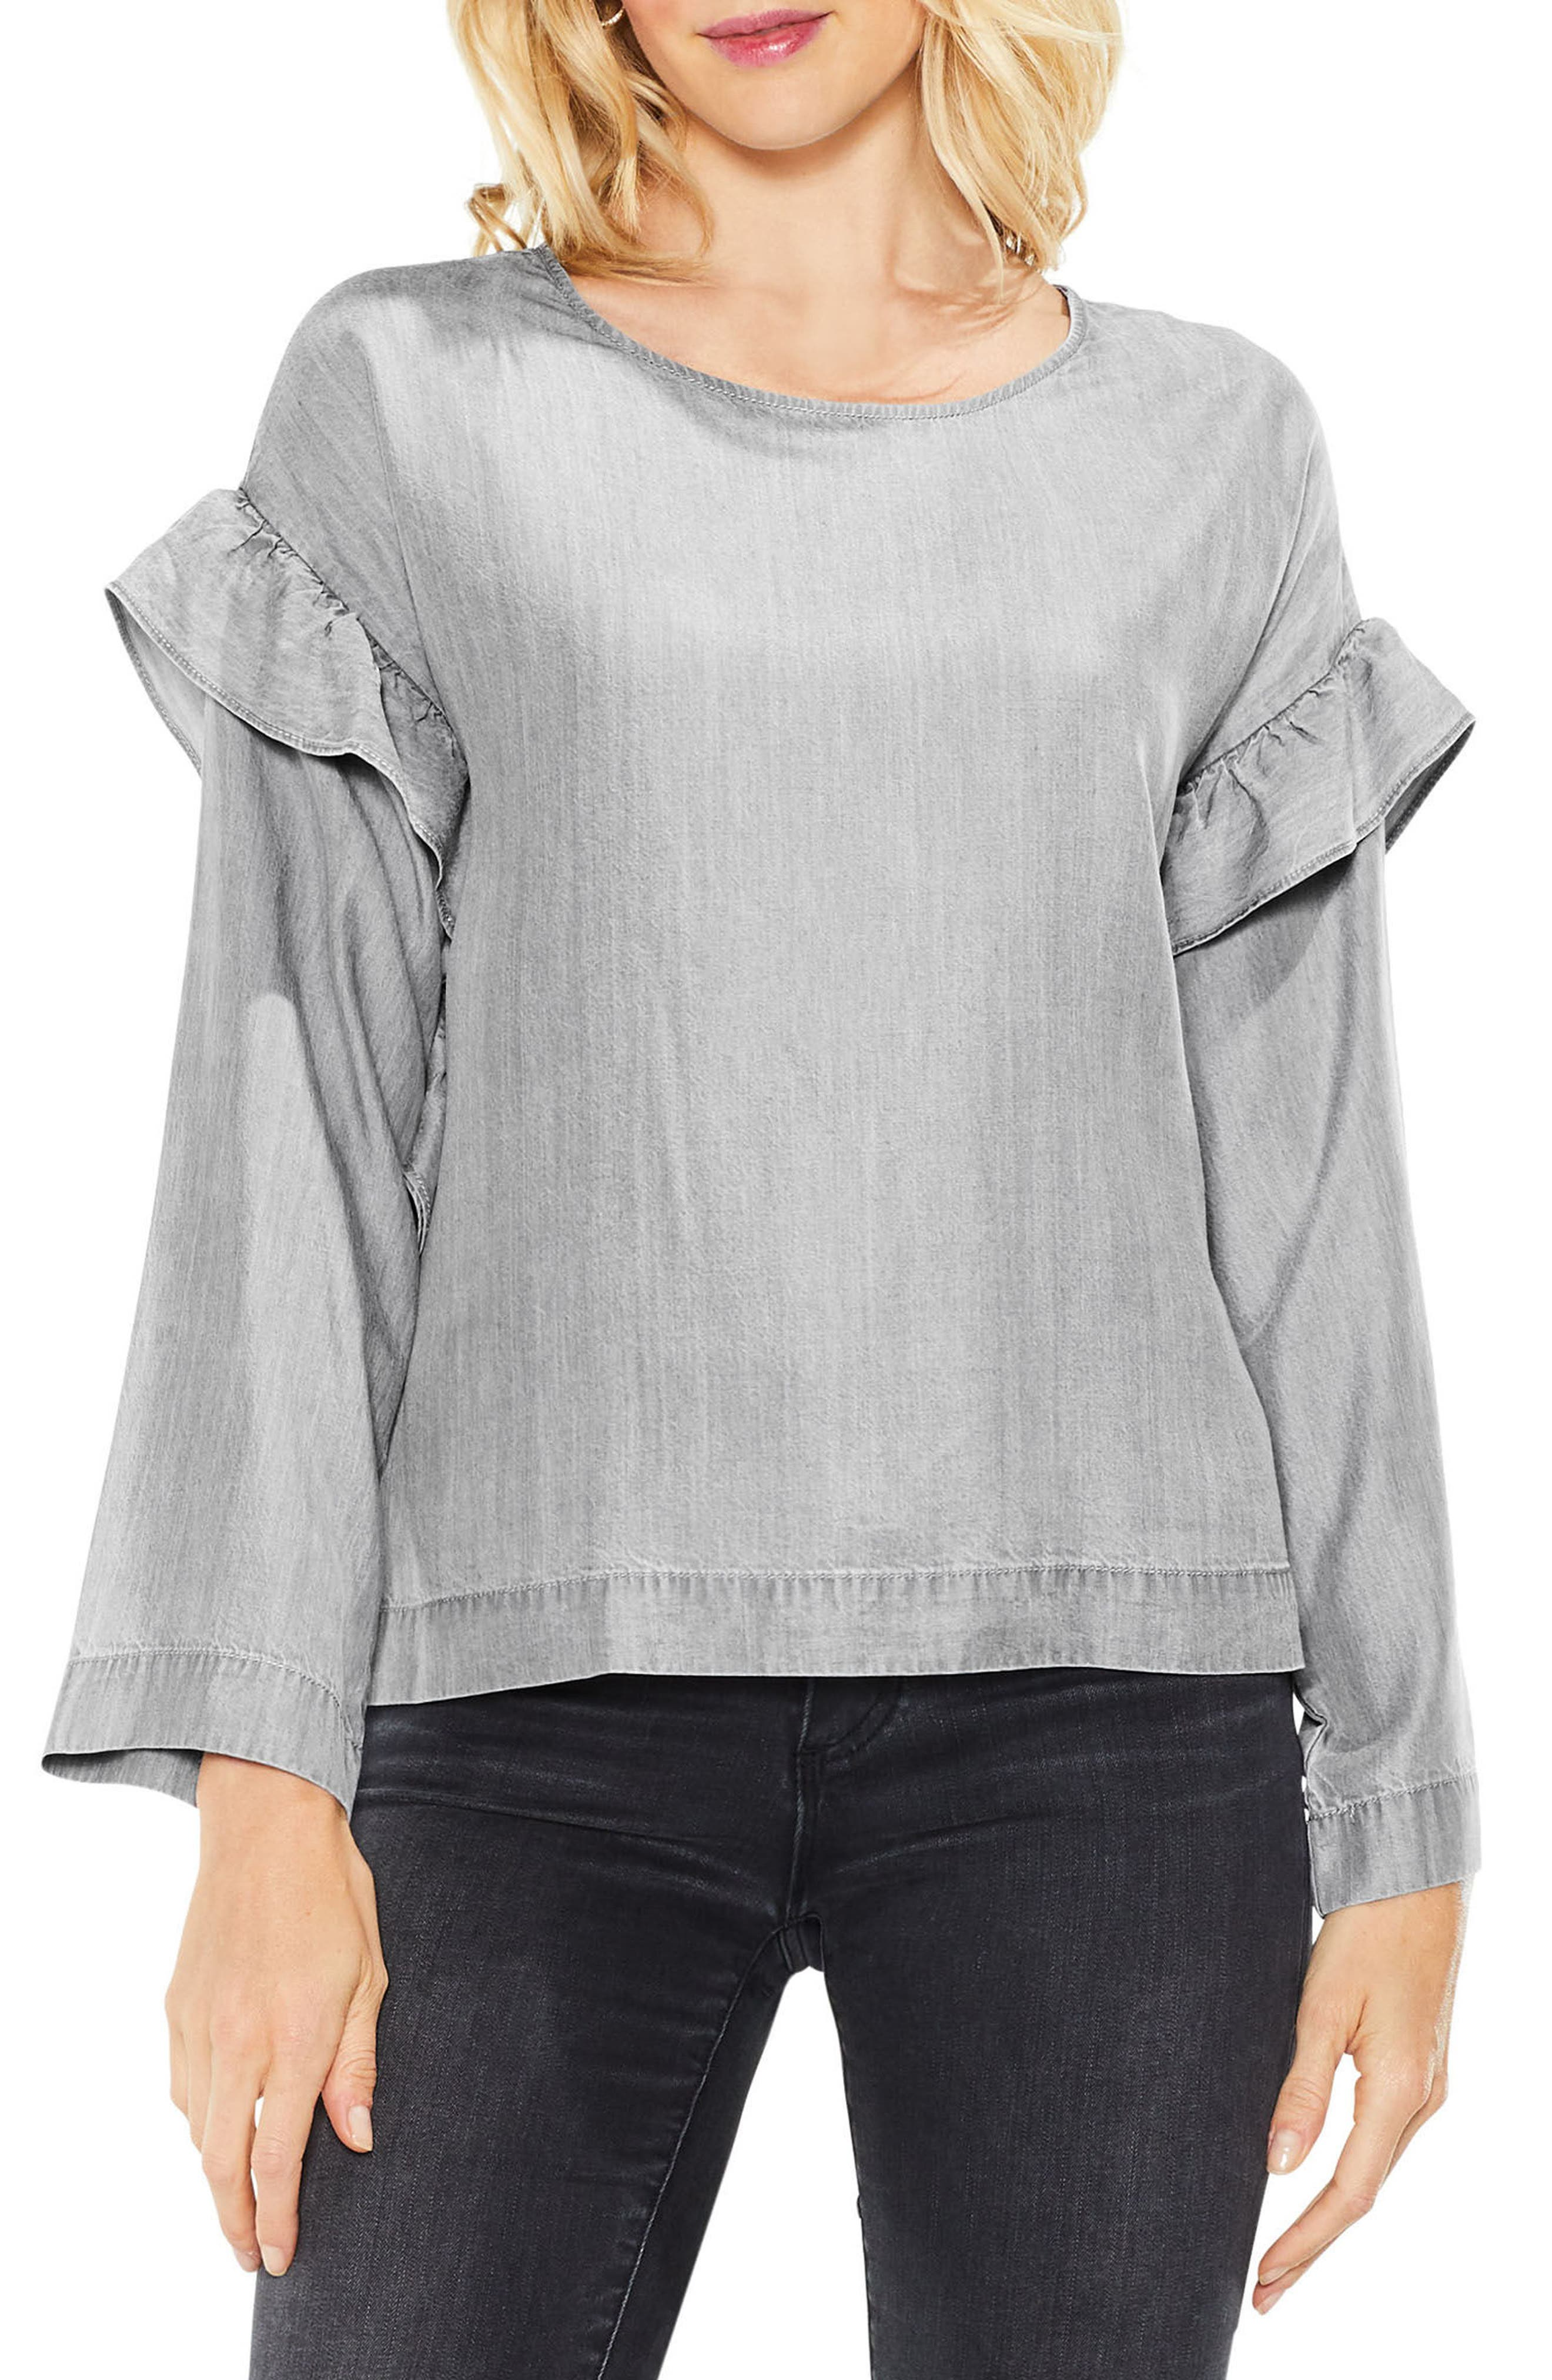 Main Image - Two by Vince Camuto Ruffle Shoulder Shirt